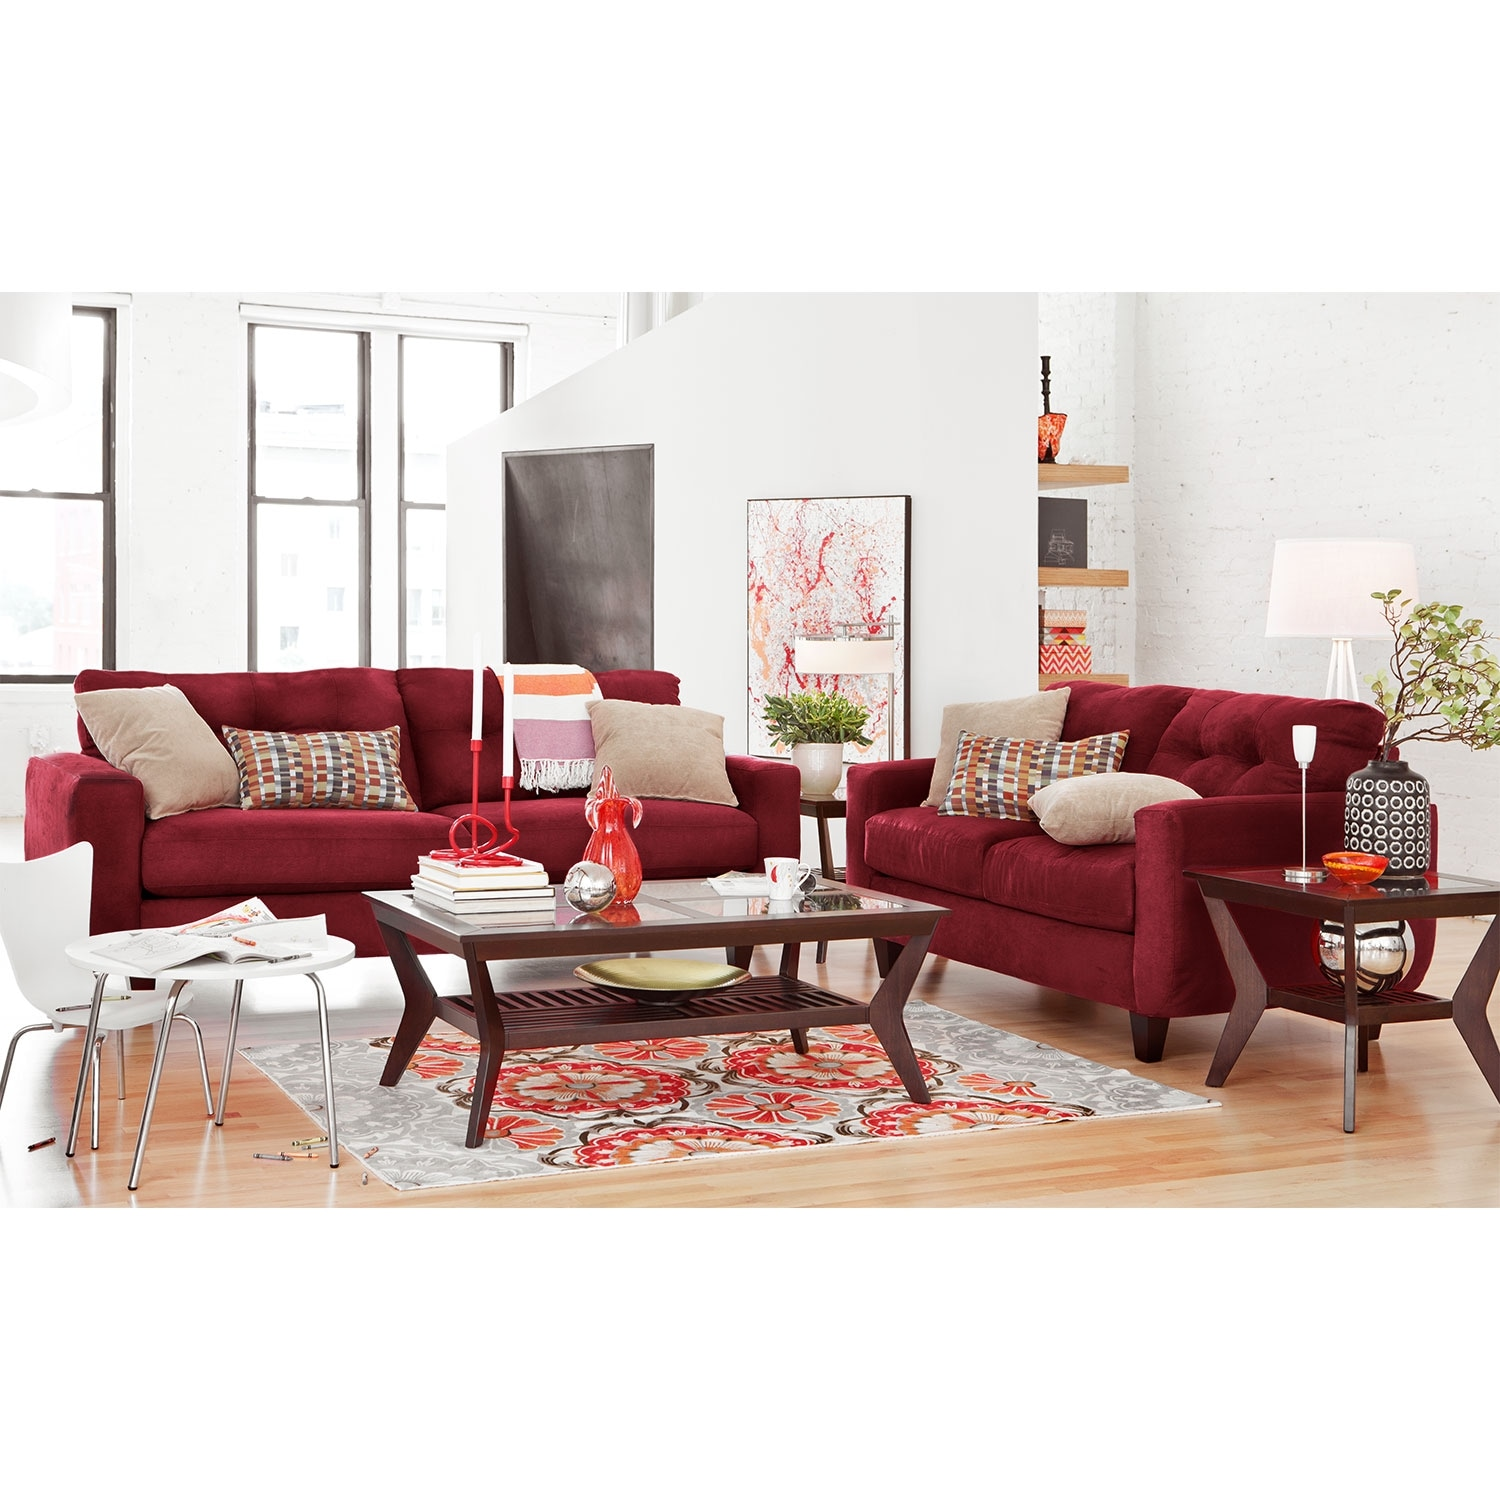 American Signature Furniture West Village Blue Ii Upholstery Trend Home Design And Decor